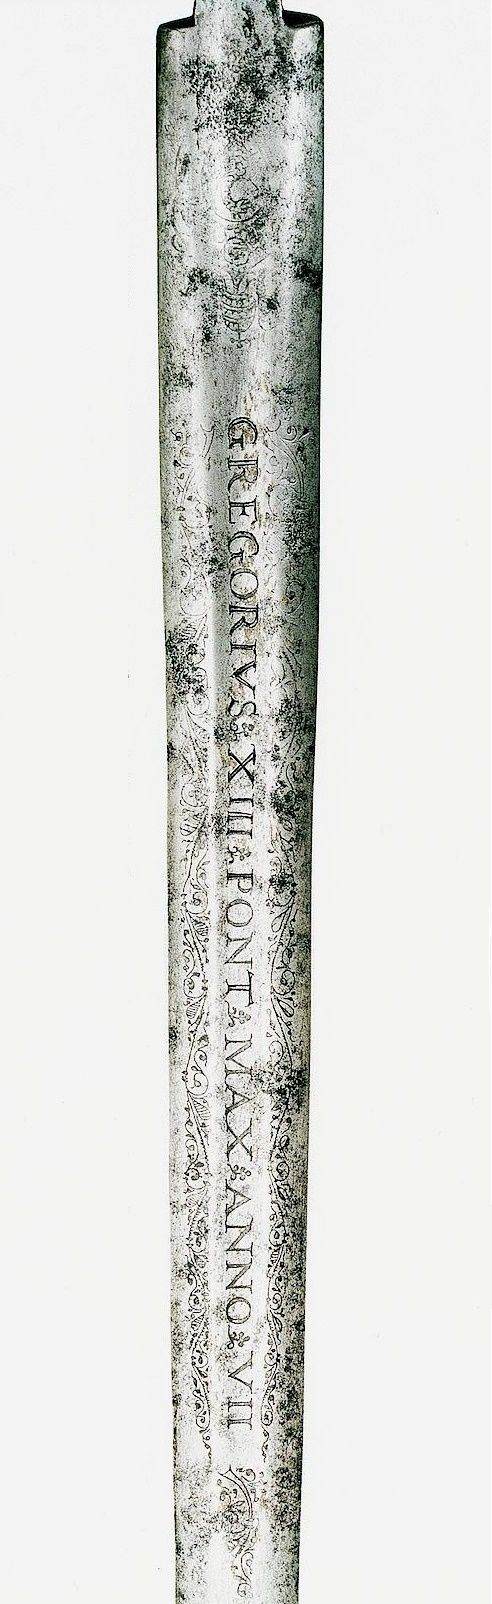 Blade of the consecrated sword presented by Pope Gregory XIII to Stephen Báthory from the State Treasury by Anonymous from Rome, before 1580, Zamek Królewski na Wawelu, given to the king in Vilnius in 1580 by Merkelis Giedraitis, Bishop of Samogitia